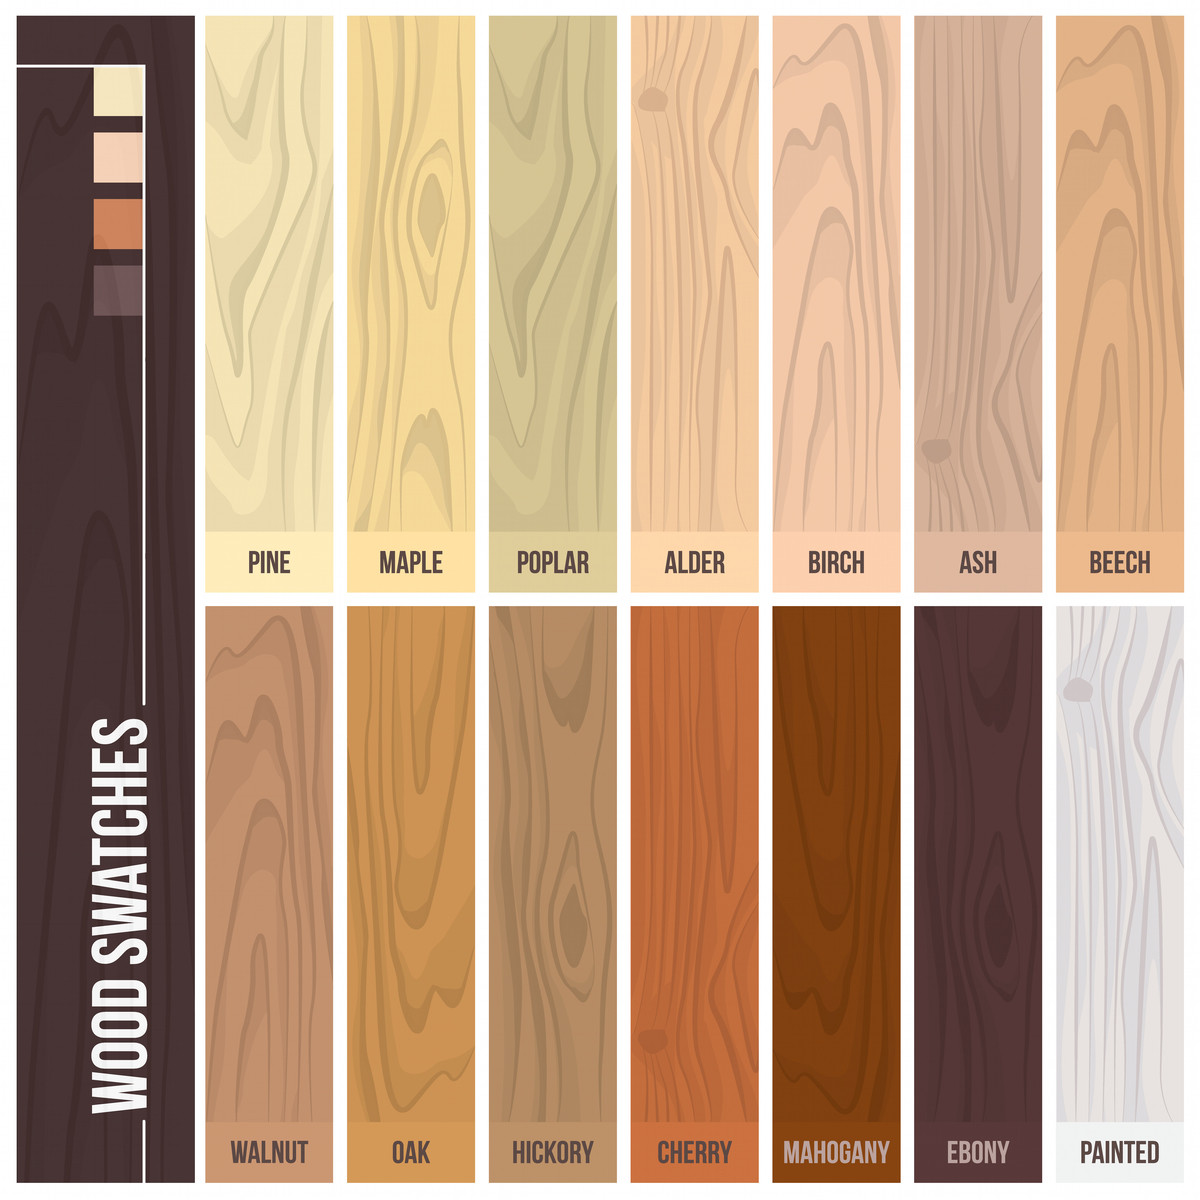 hardwood floor installation glue of 12 types of hardwood flooring species styles edging dimensions within types of hardwood flooring illustrated guide